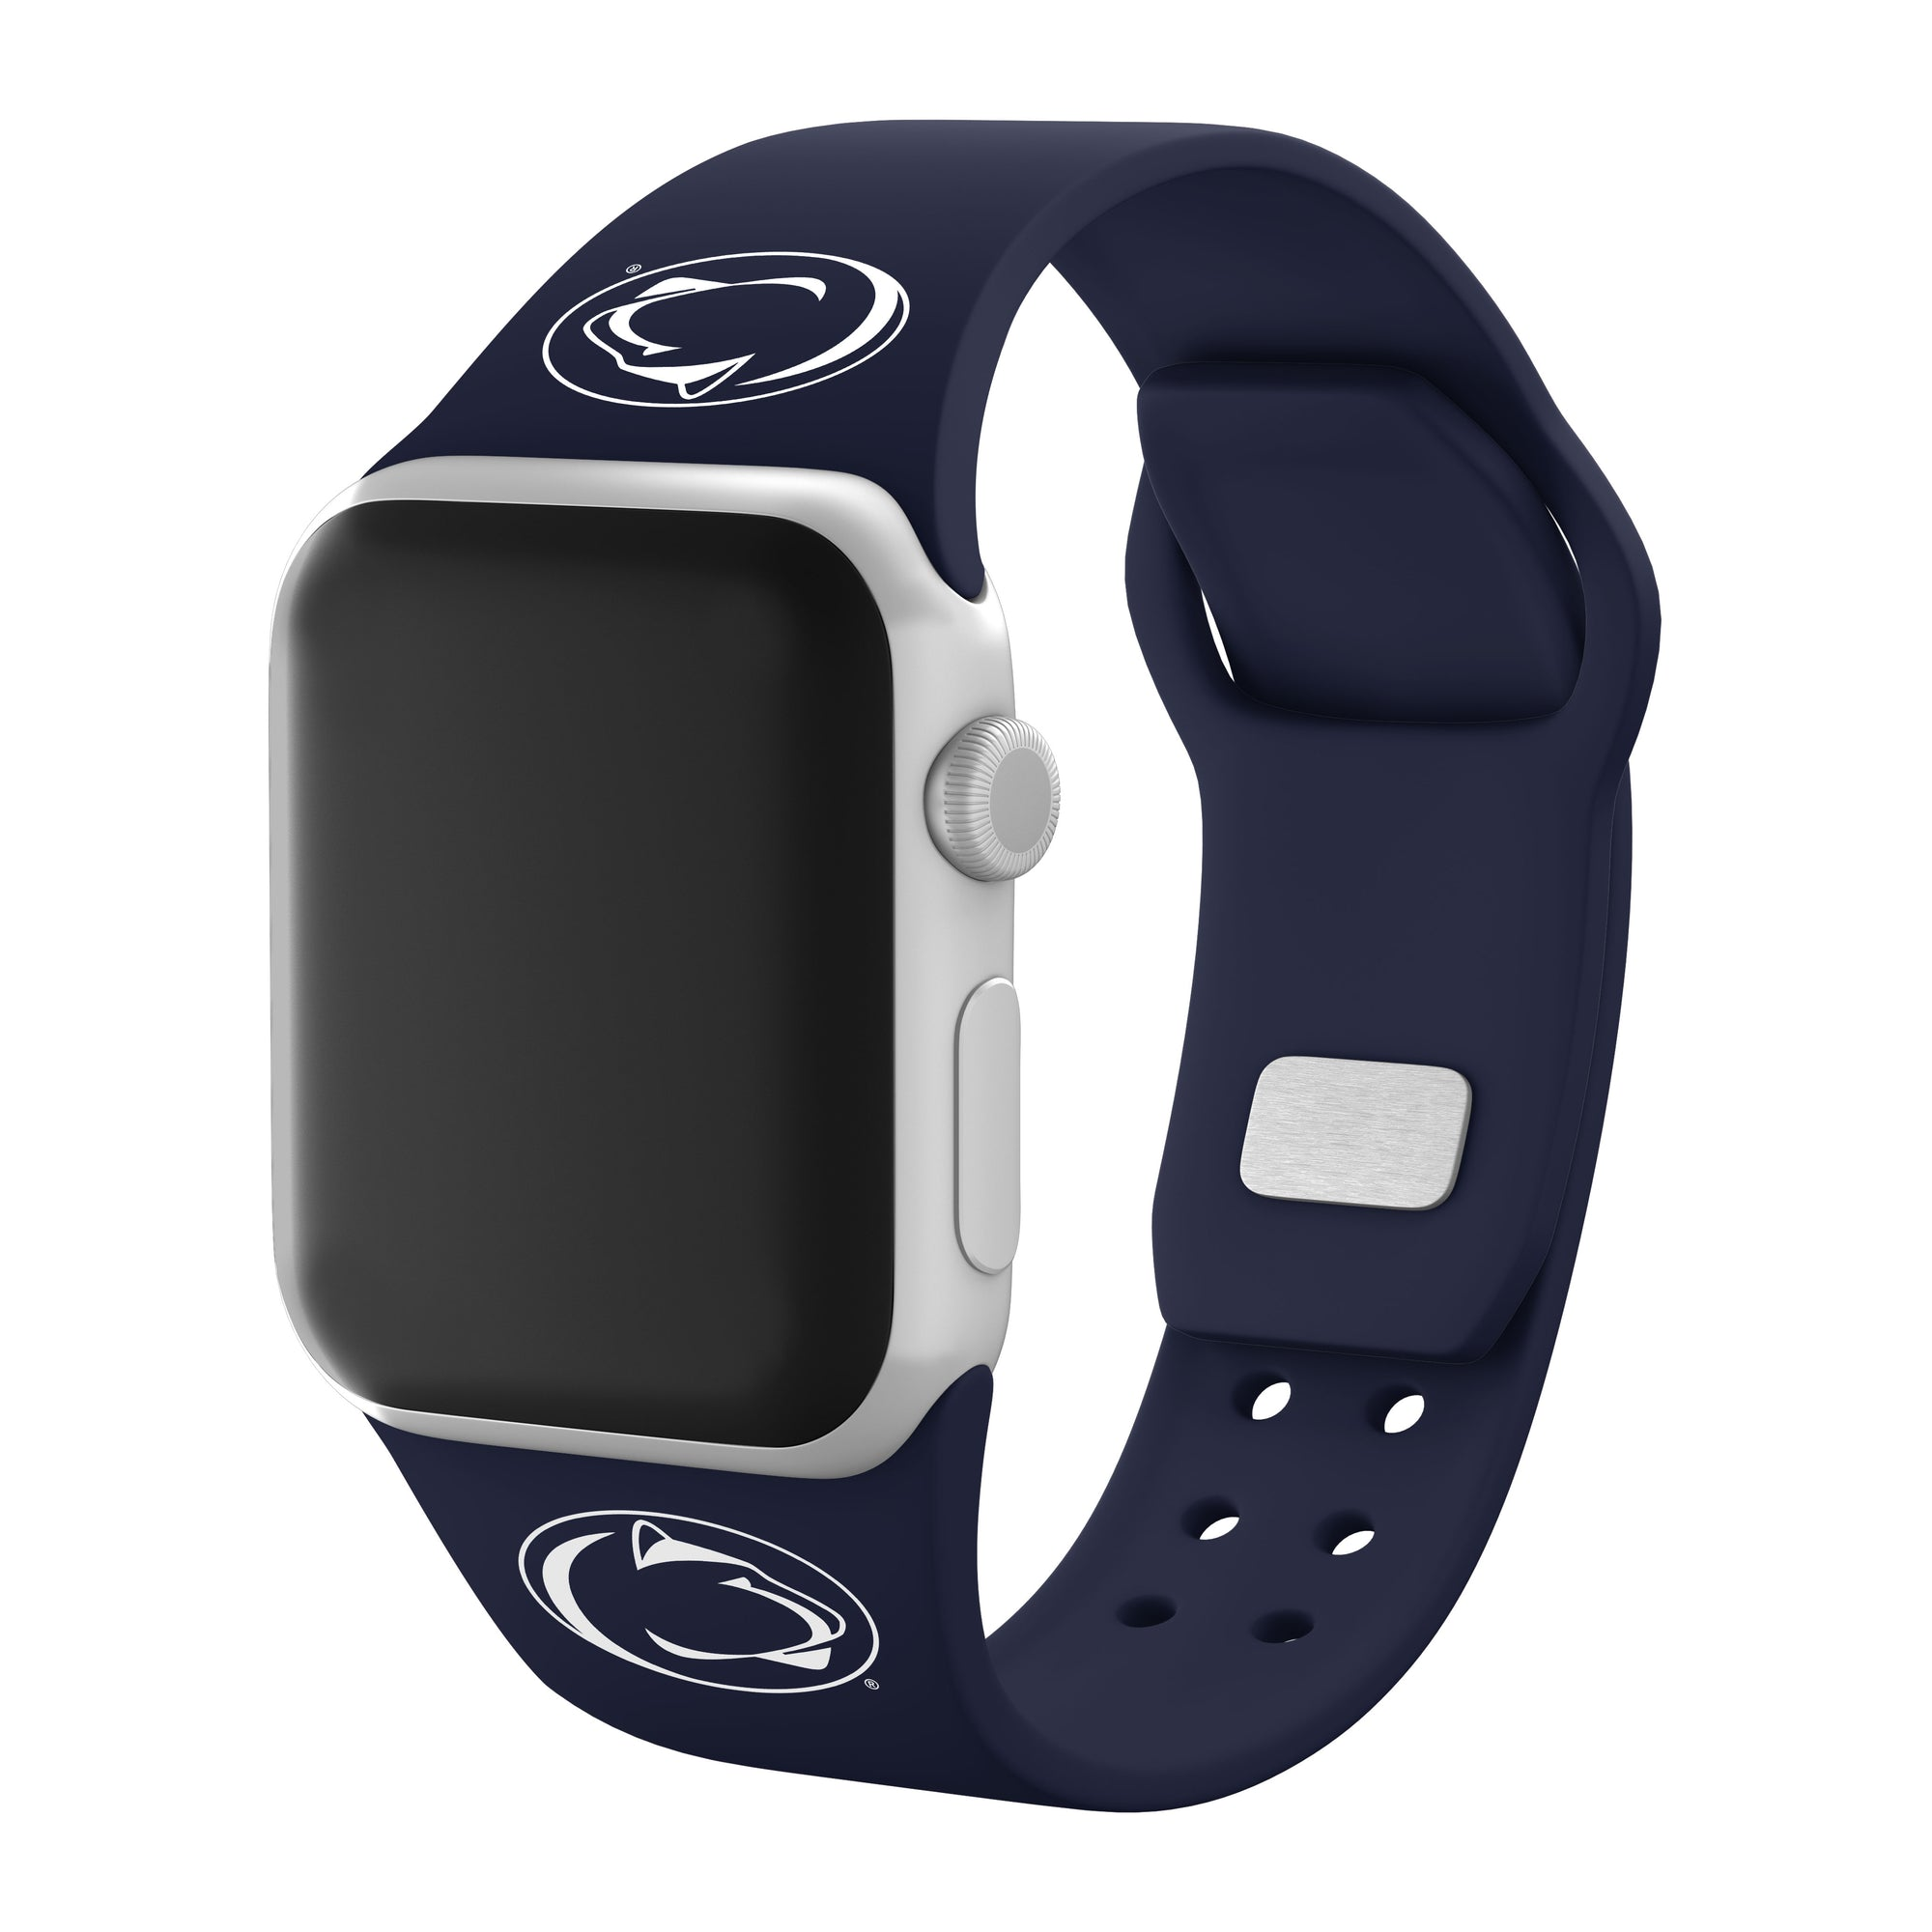 Penn State Nittany Lions Apple Watch Band - Affinity Bands